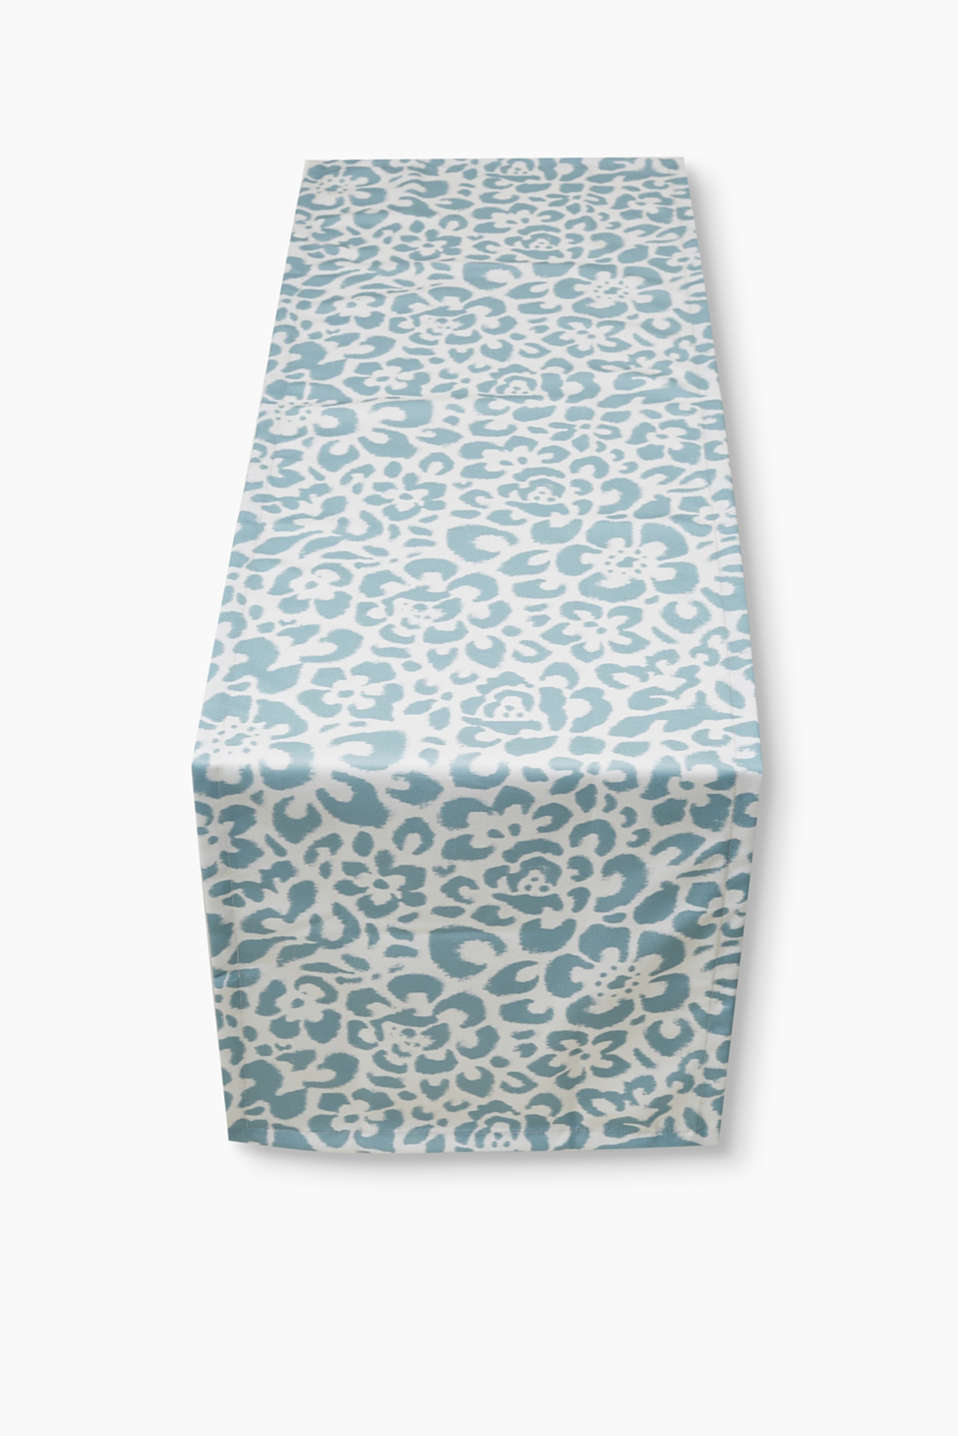 Esprit - Leo digital print table runner